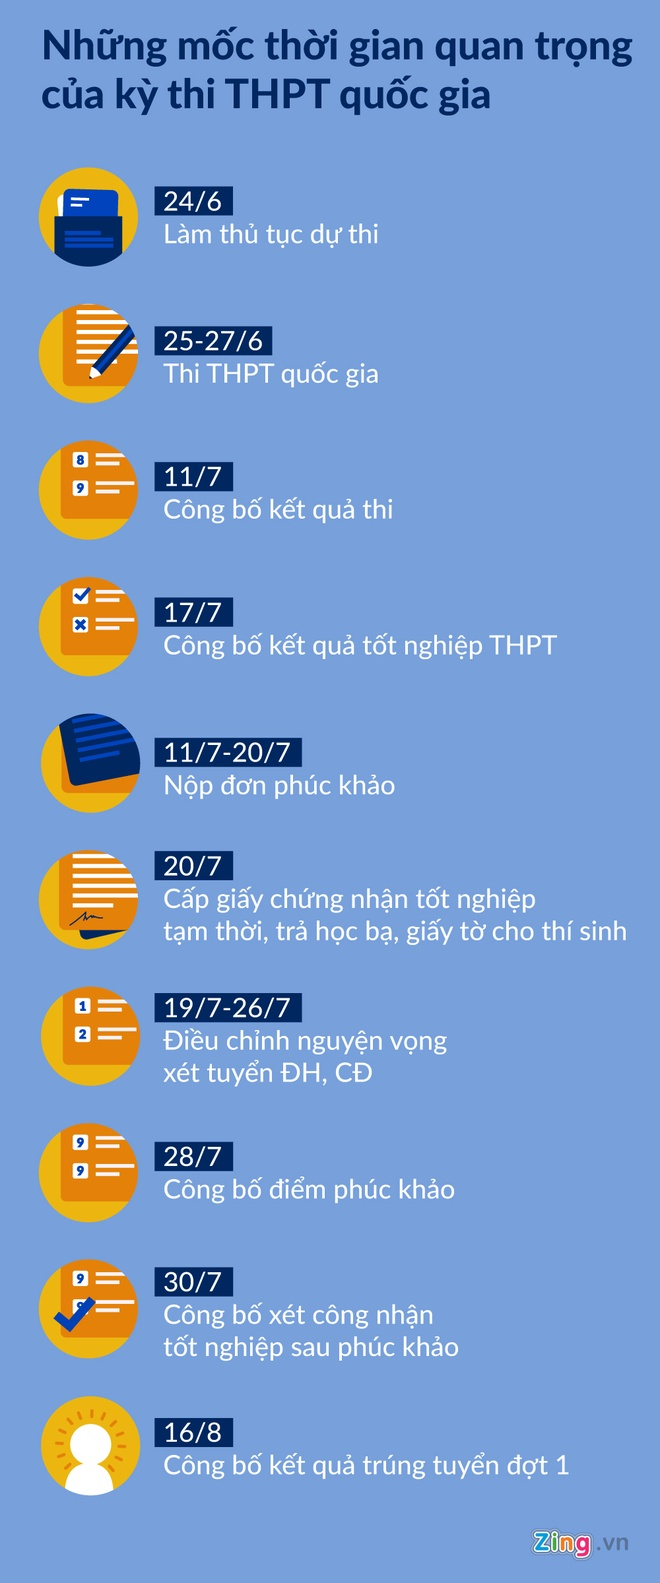 Lich thi THPT Quoc gia nam 2018 anh 10